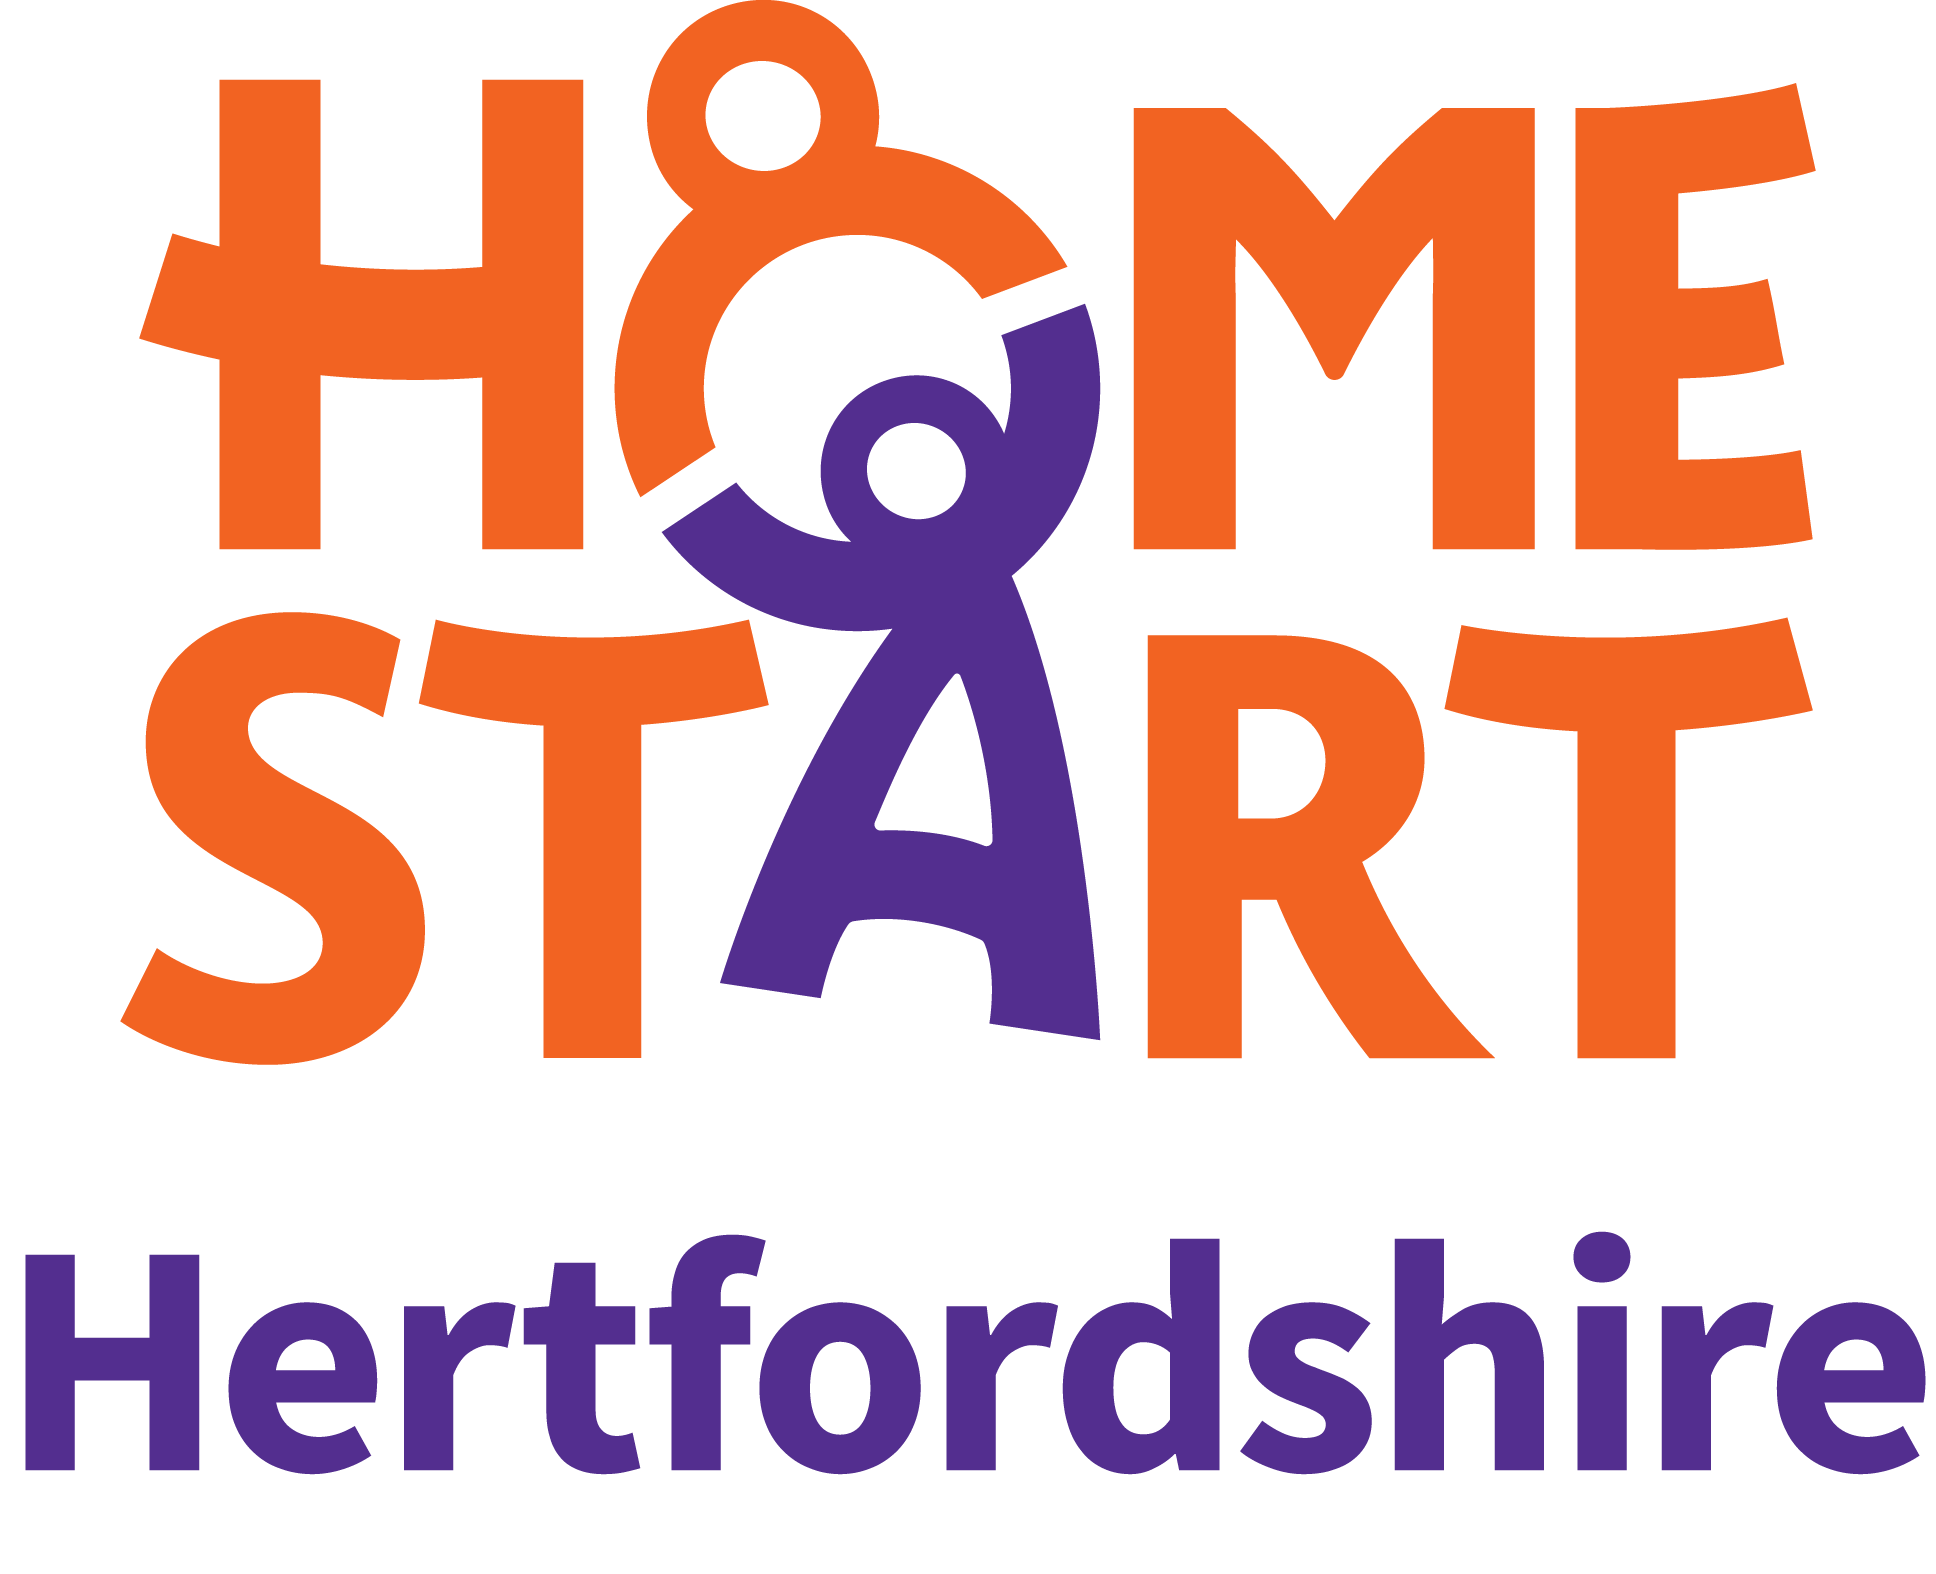 Home Start Hertfordshire